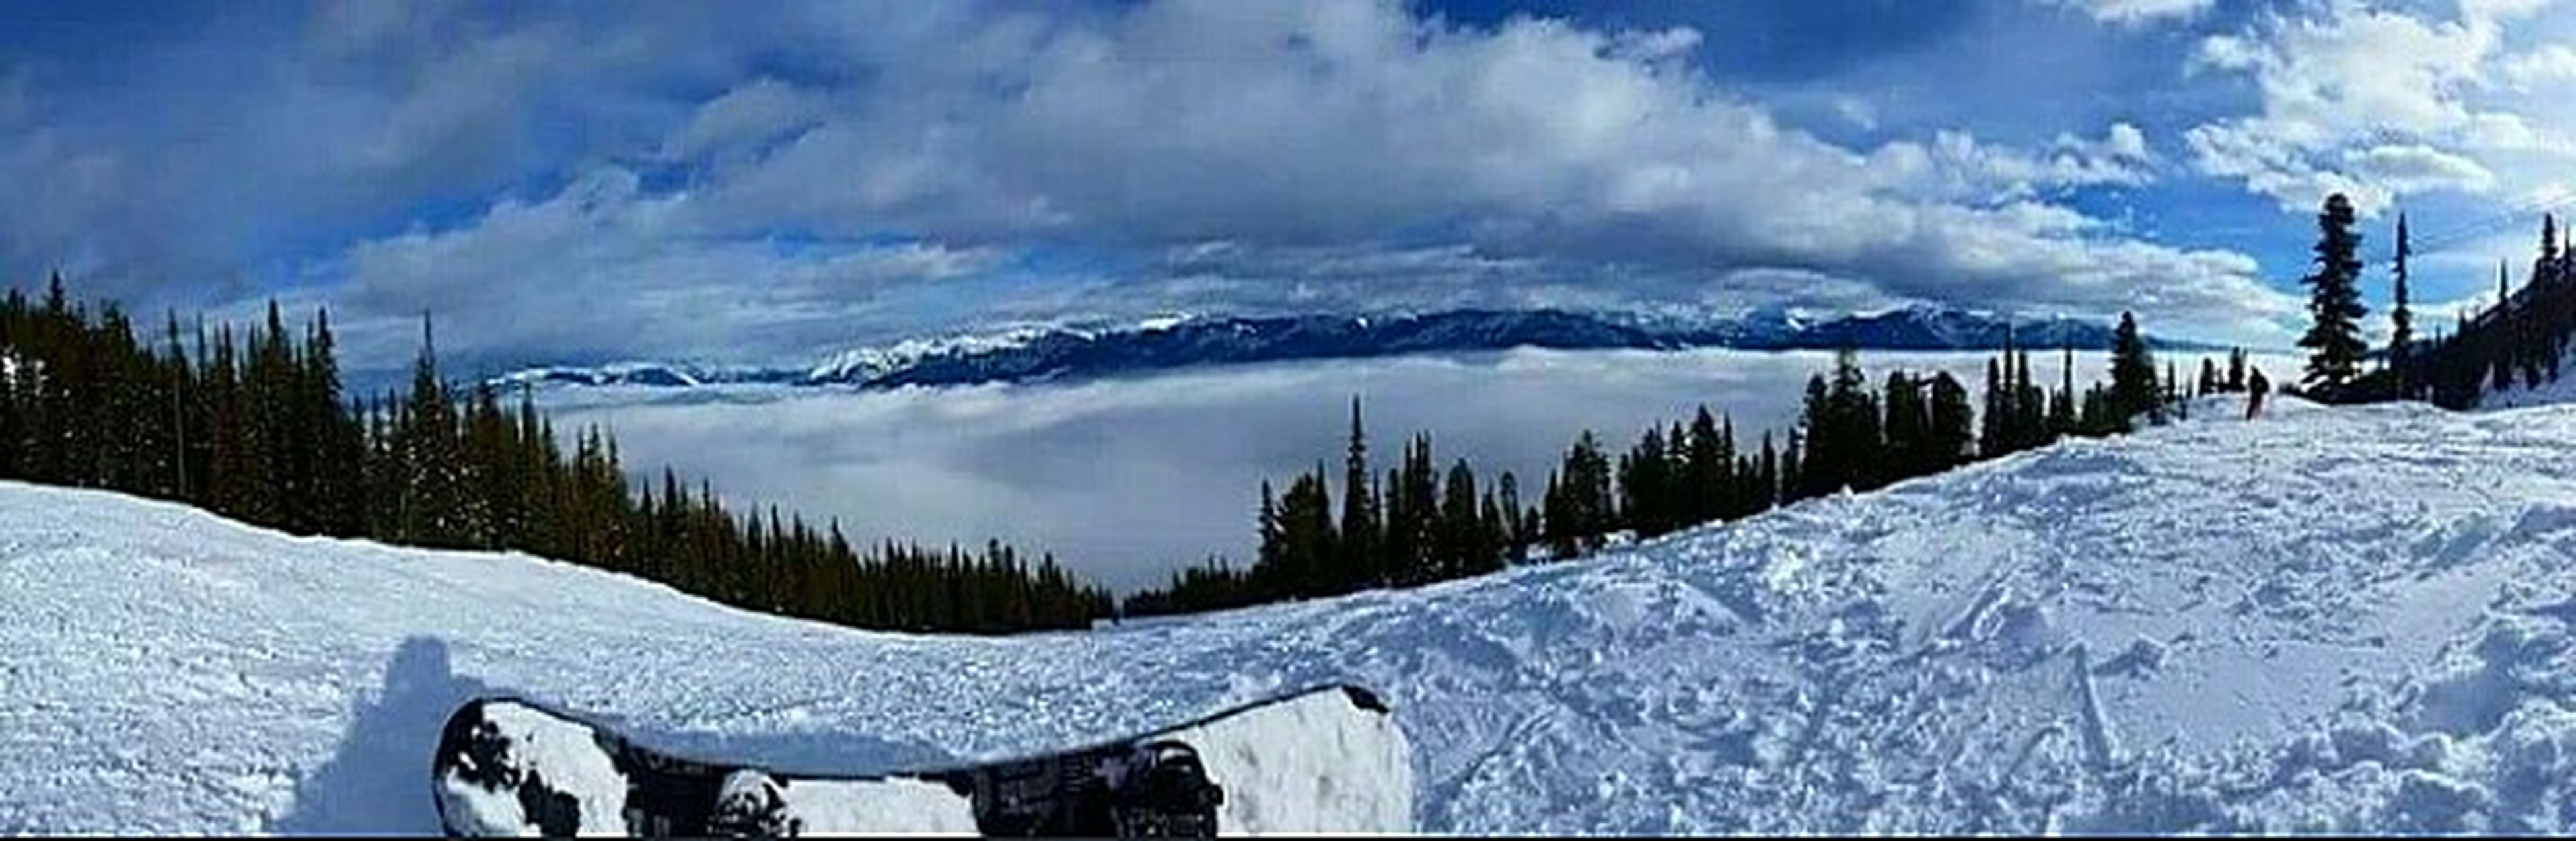 snow, winter, cold temperature, weather, sky, cloud - sky, season, tranquil scene, beauty in nature, scenics, mountain, tranquility, cloudy, nature, covering, cloud, frozen, panoramic, mountain range, landscape